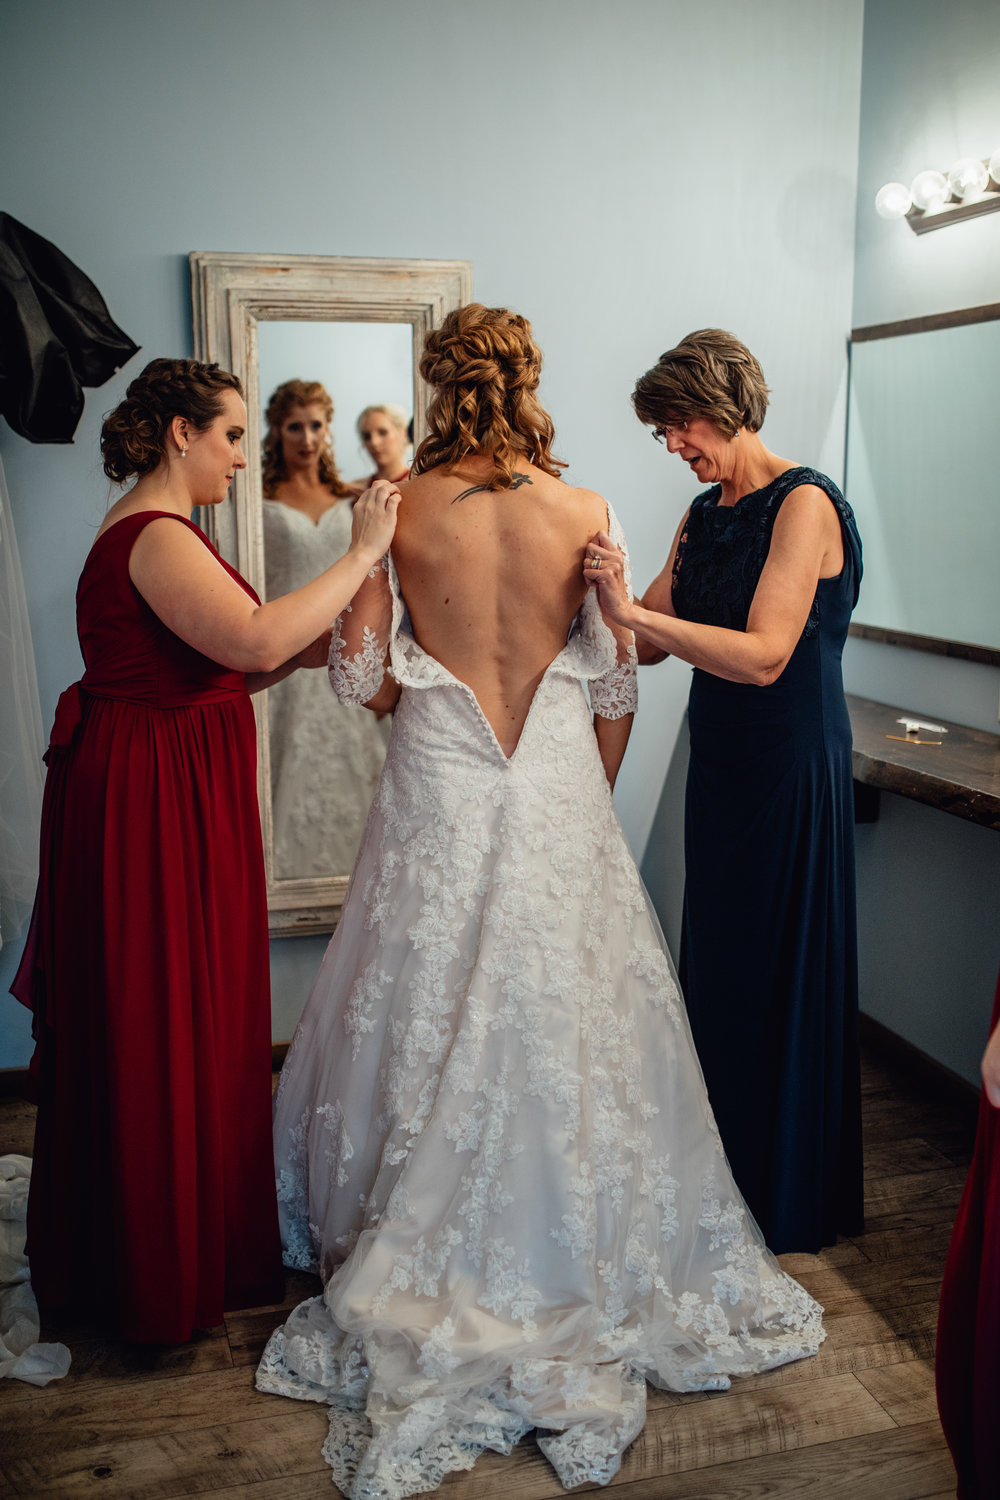 mother-and-bridesmaid-helping-bride-into-dress.jpg